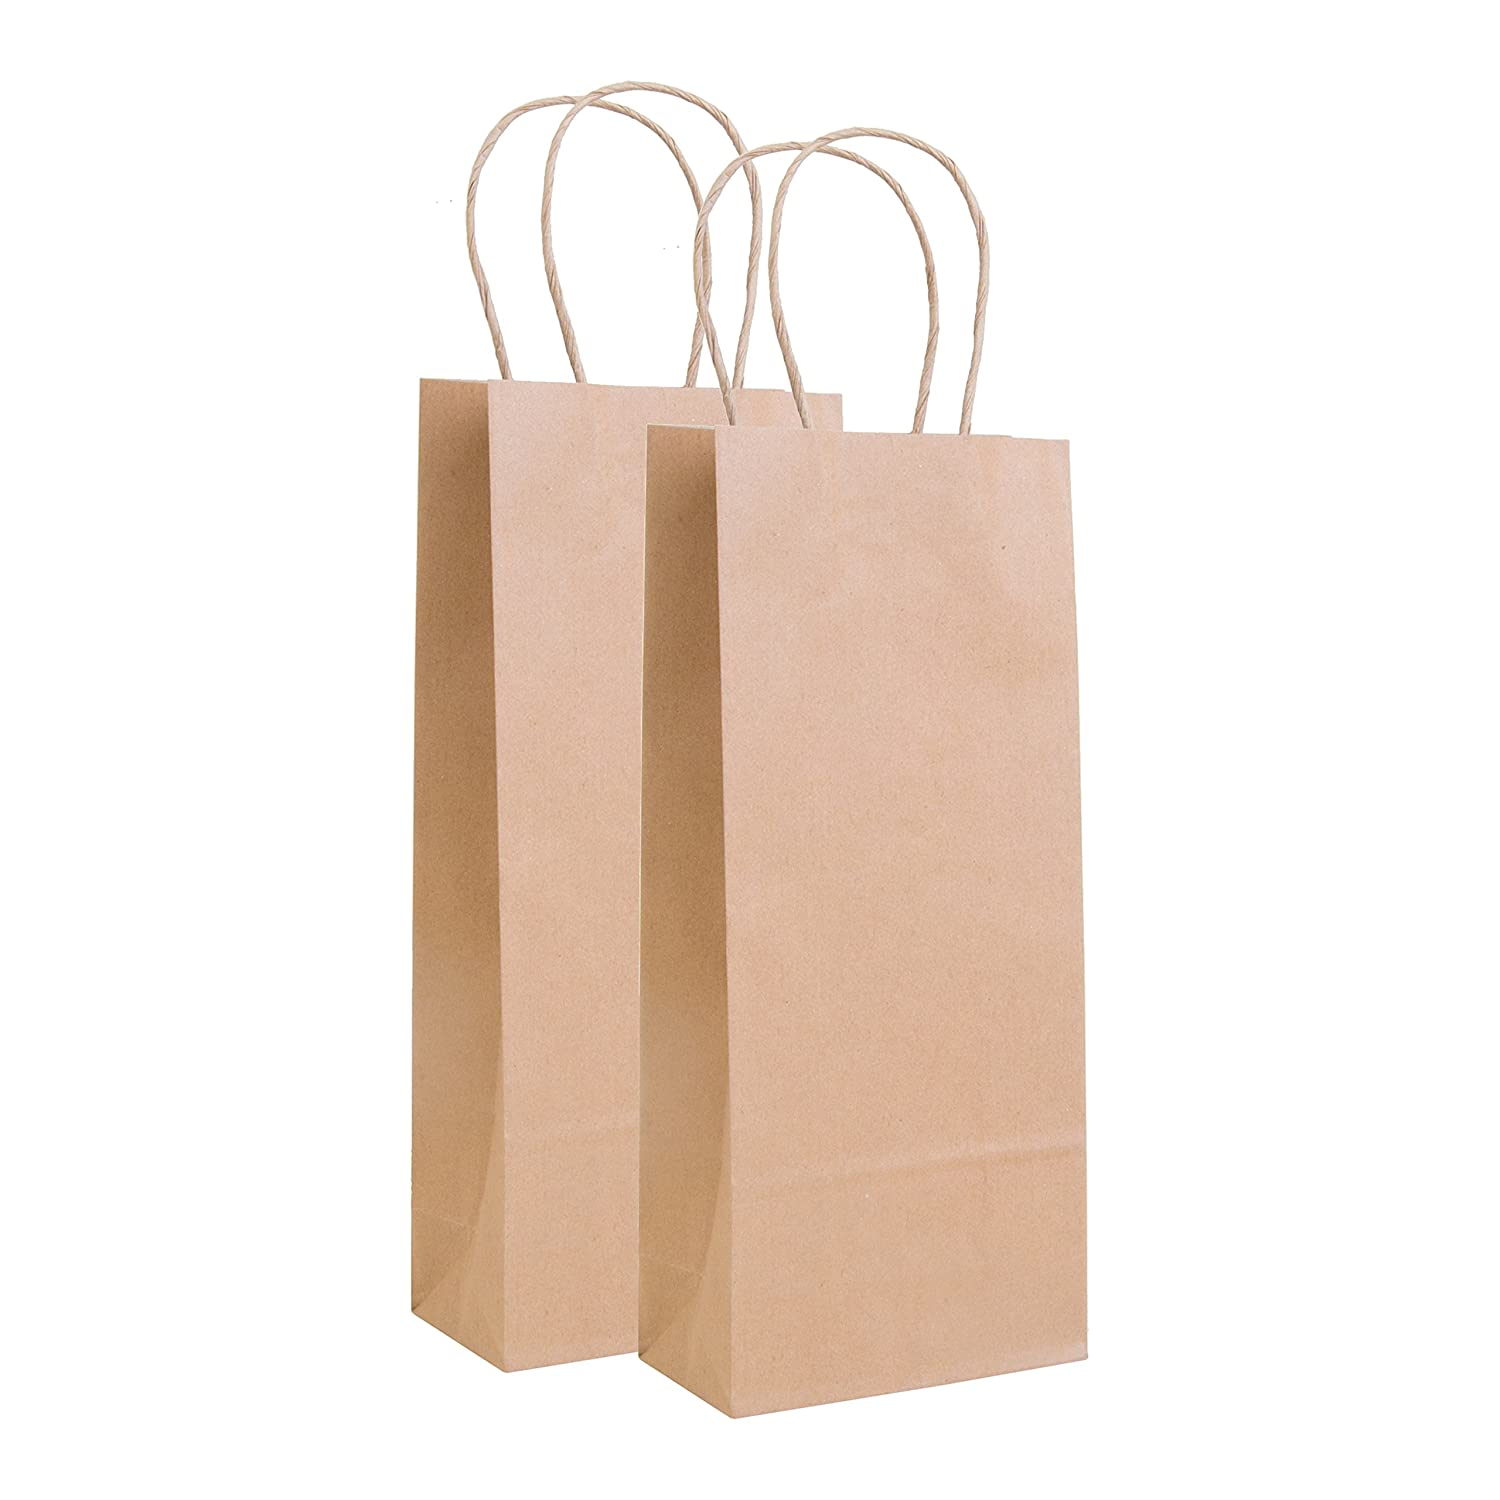 Incredible Packaging - 5.5 x 3.25'' x 13 Wine Kraft Bag with Handles, for Gifts, Retail and Merchandise. Strong and Reusable - 80 Paper Thickness (20, White)